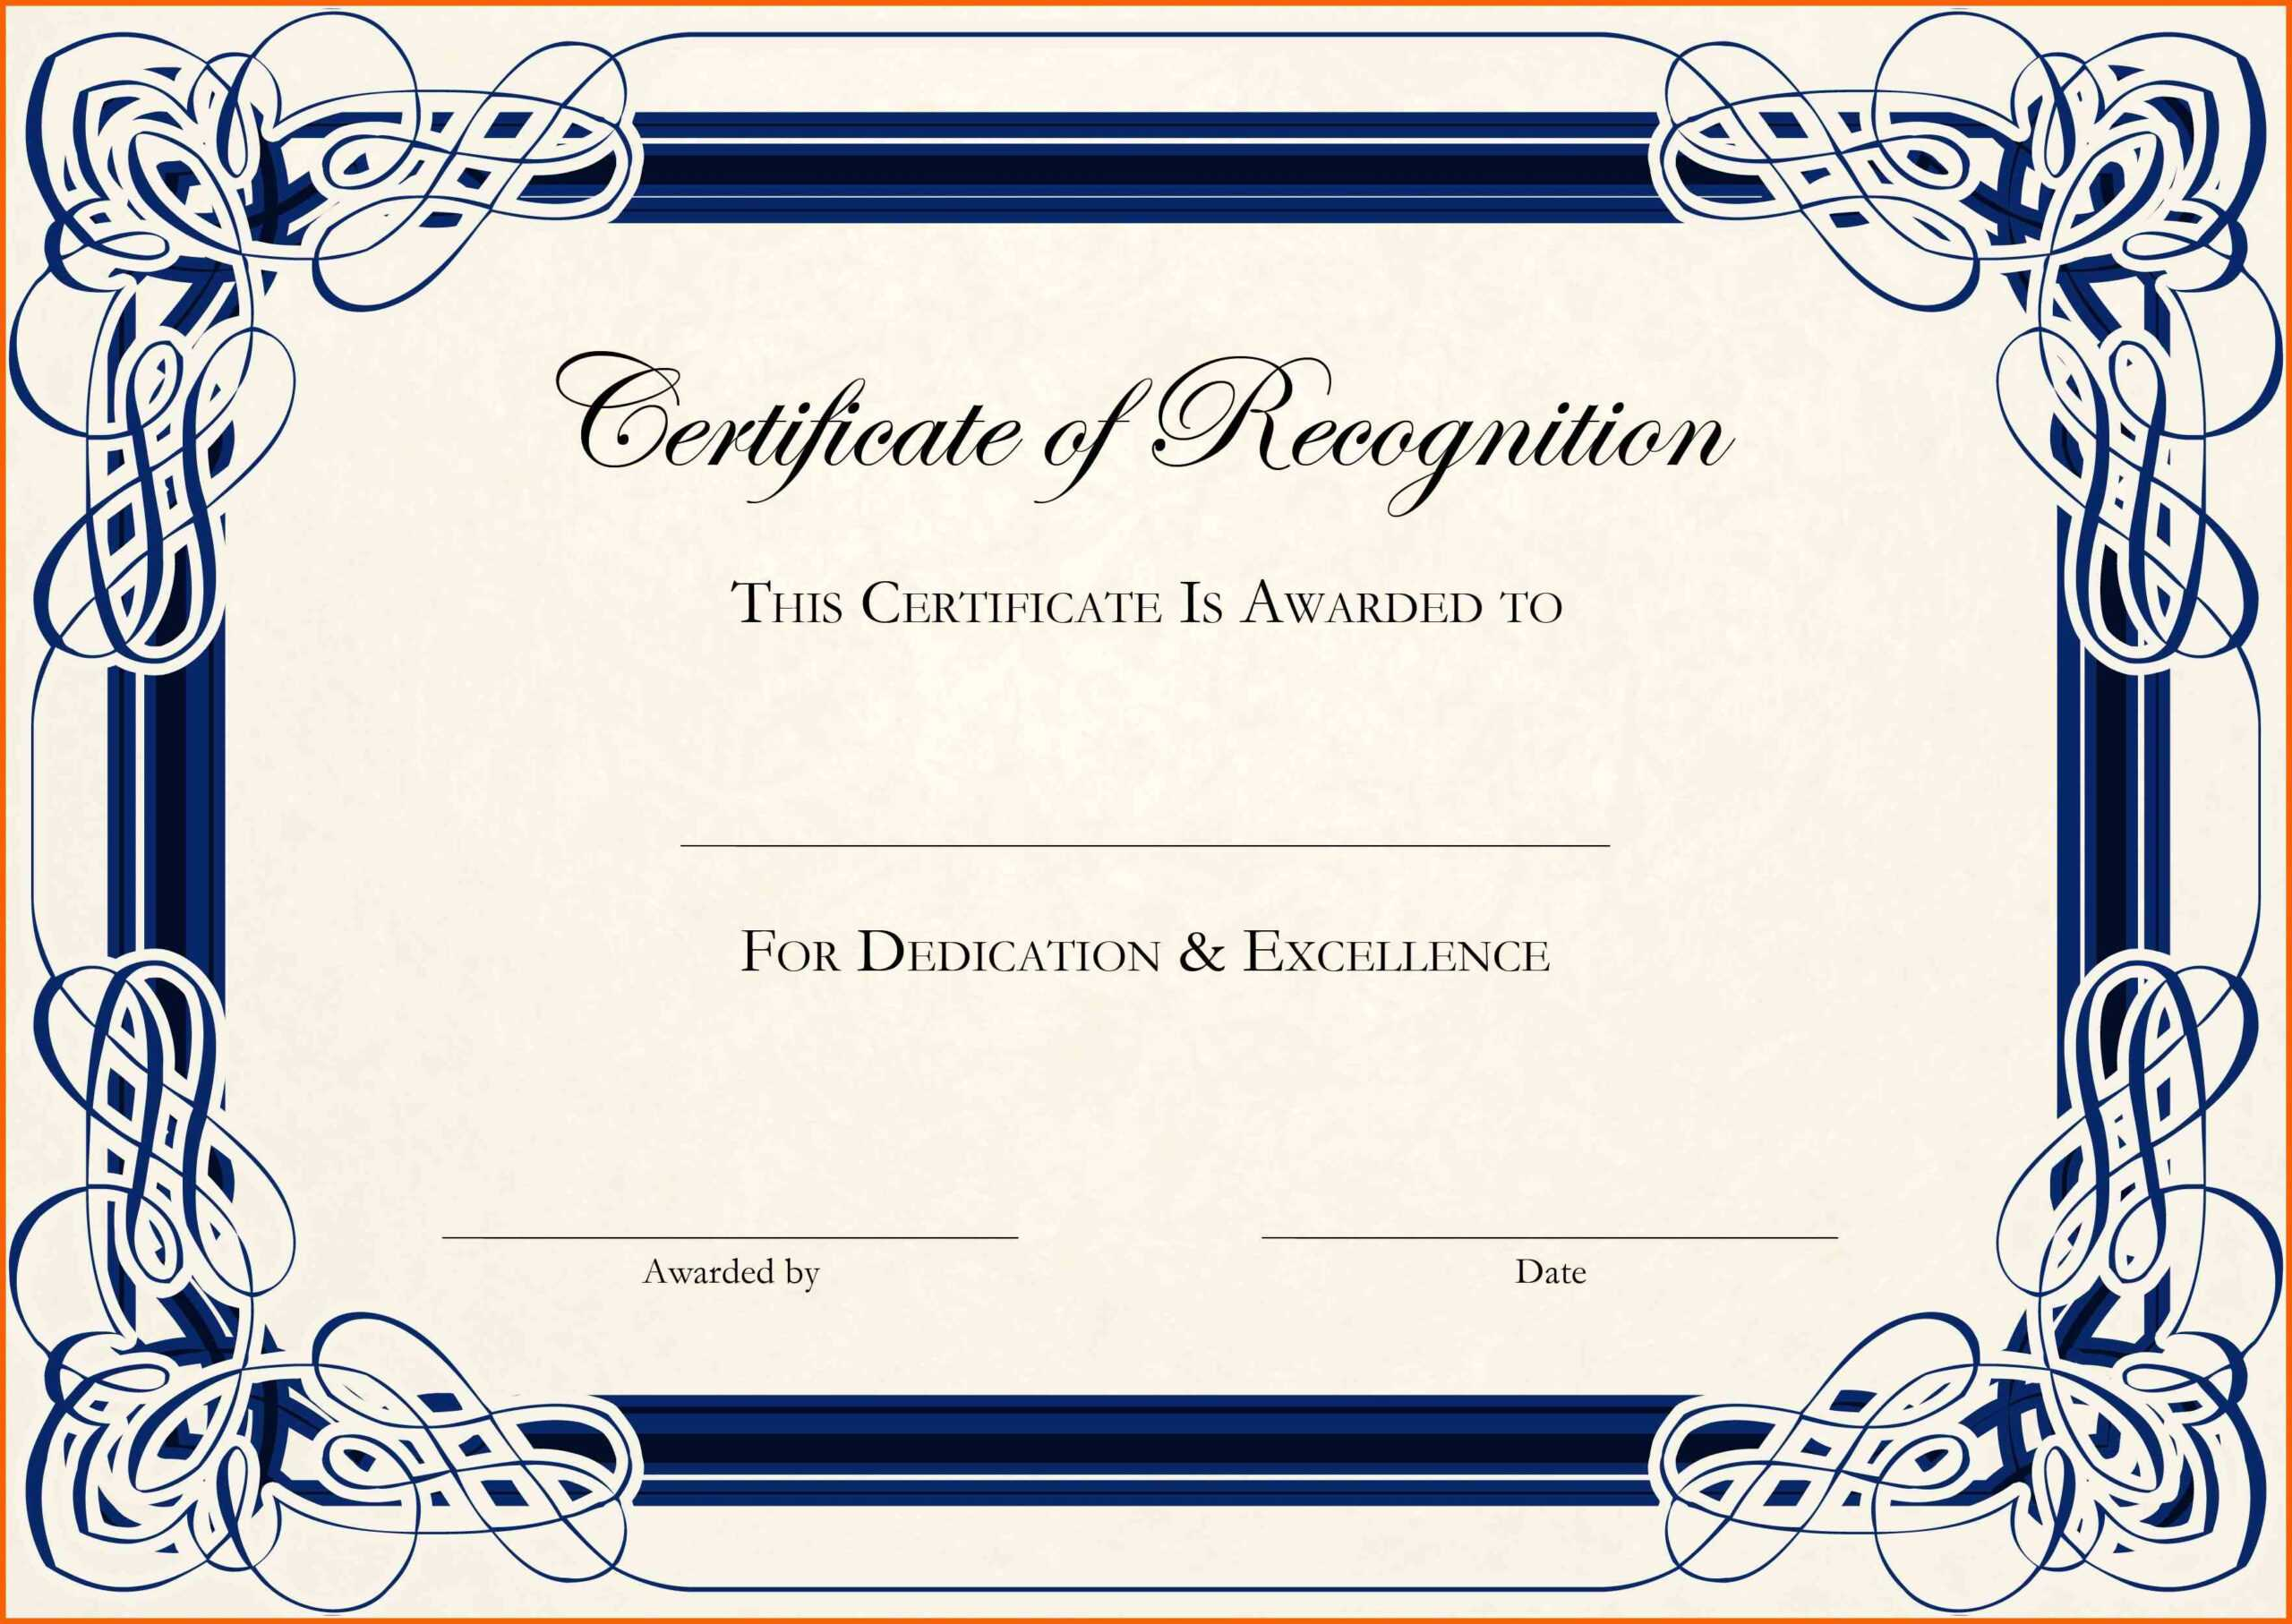 11+ Free Downloads Certificate Templates In Word | Ml Datos Inside Certificate Templates For Word Free Downloads